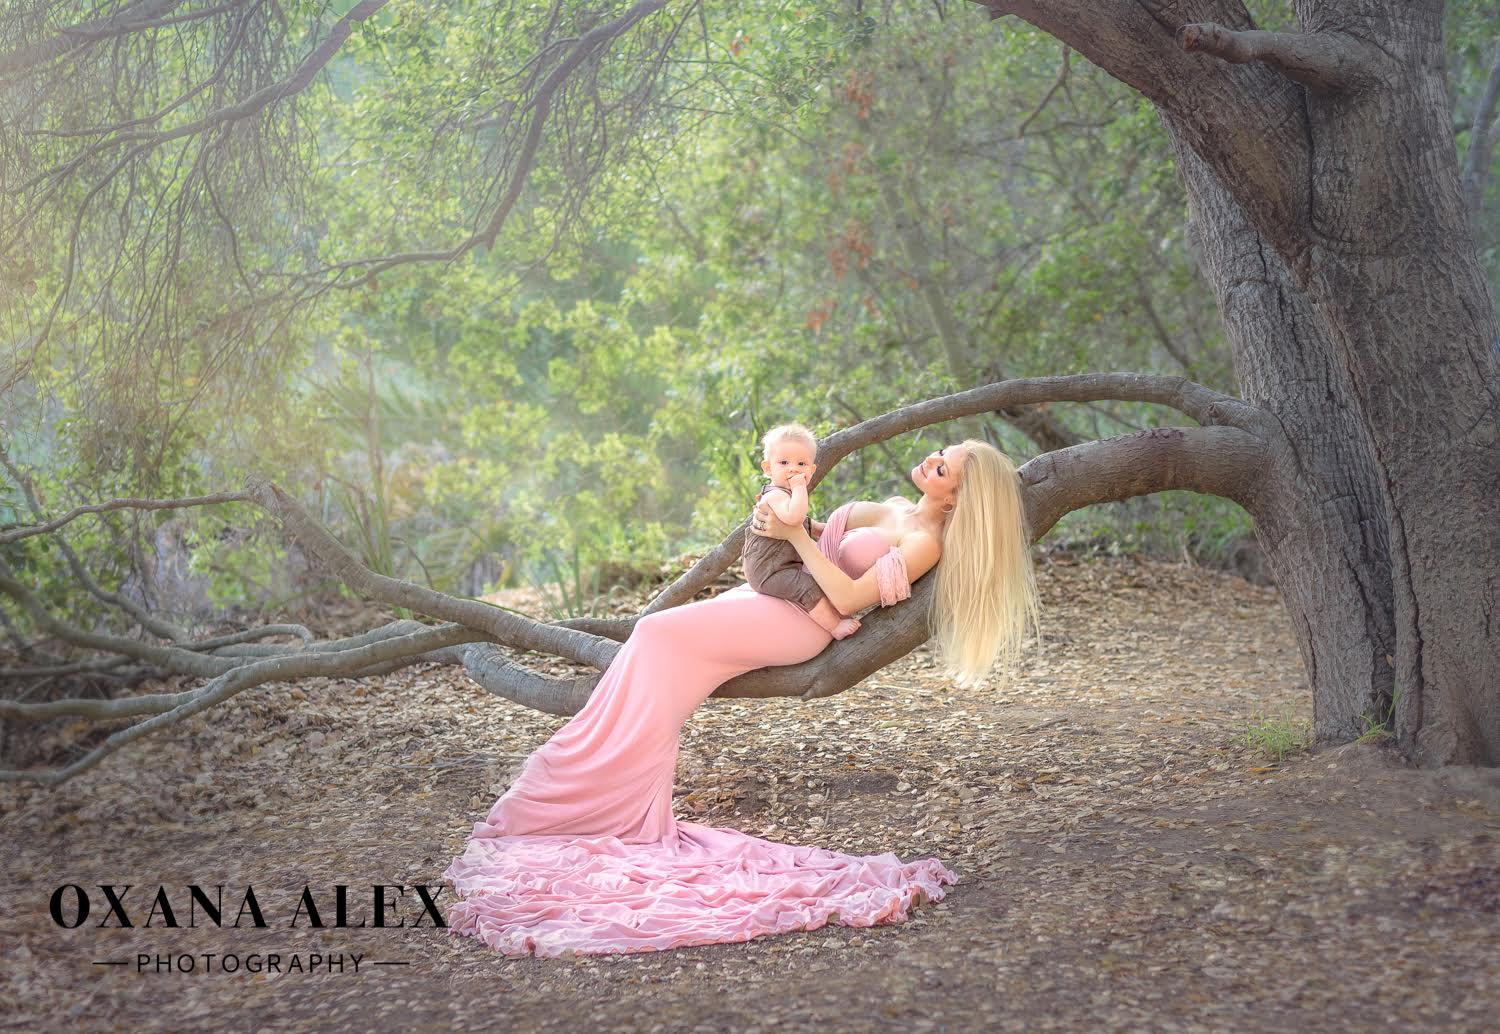 a blonde girl wearing a long pink dress lying on a branch of a tree and holding a baby